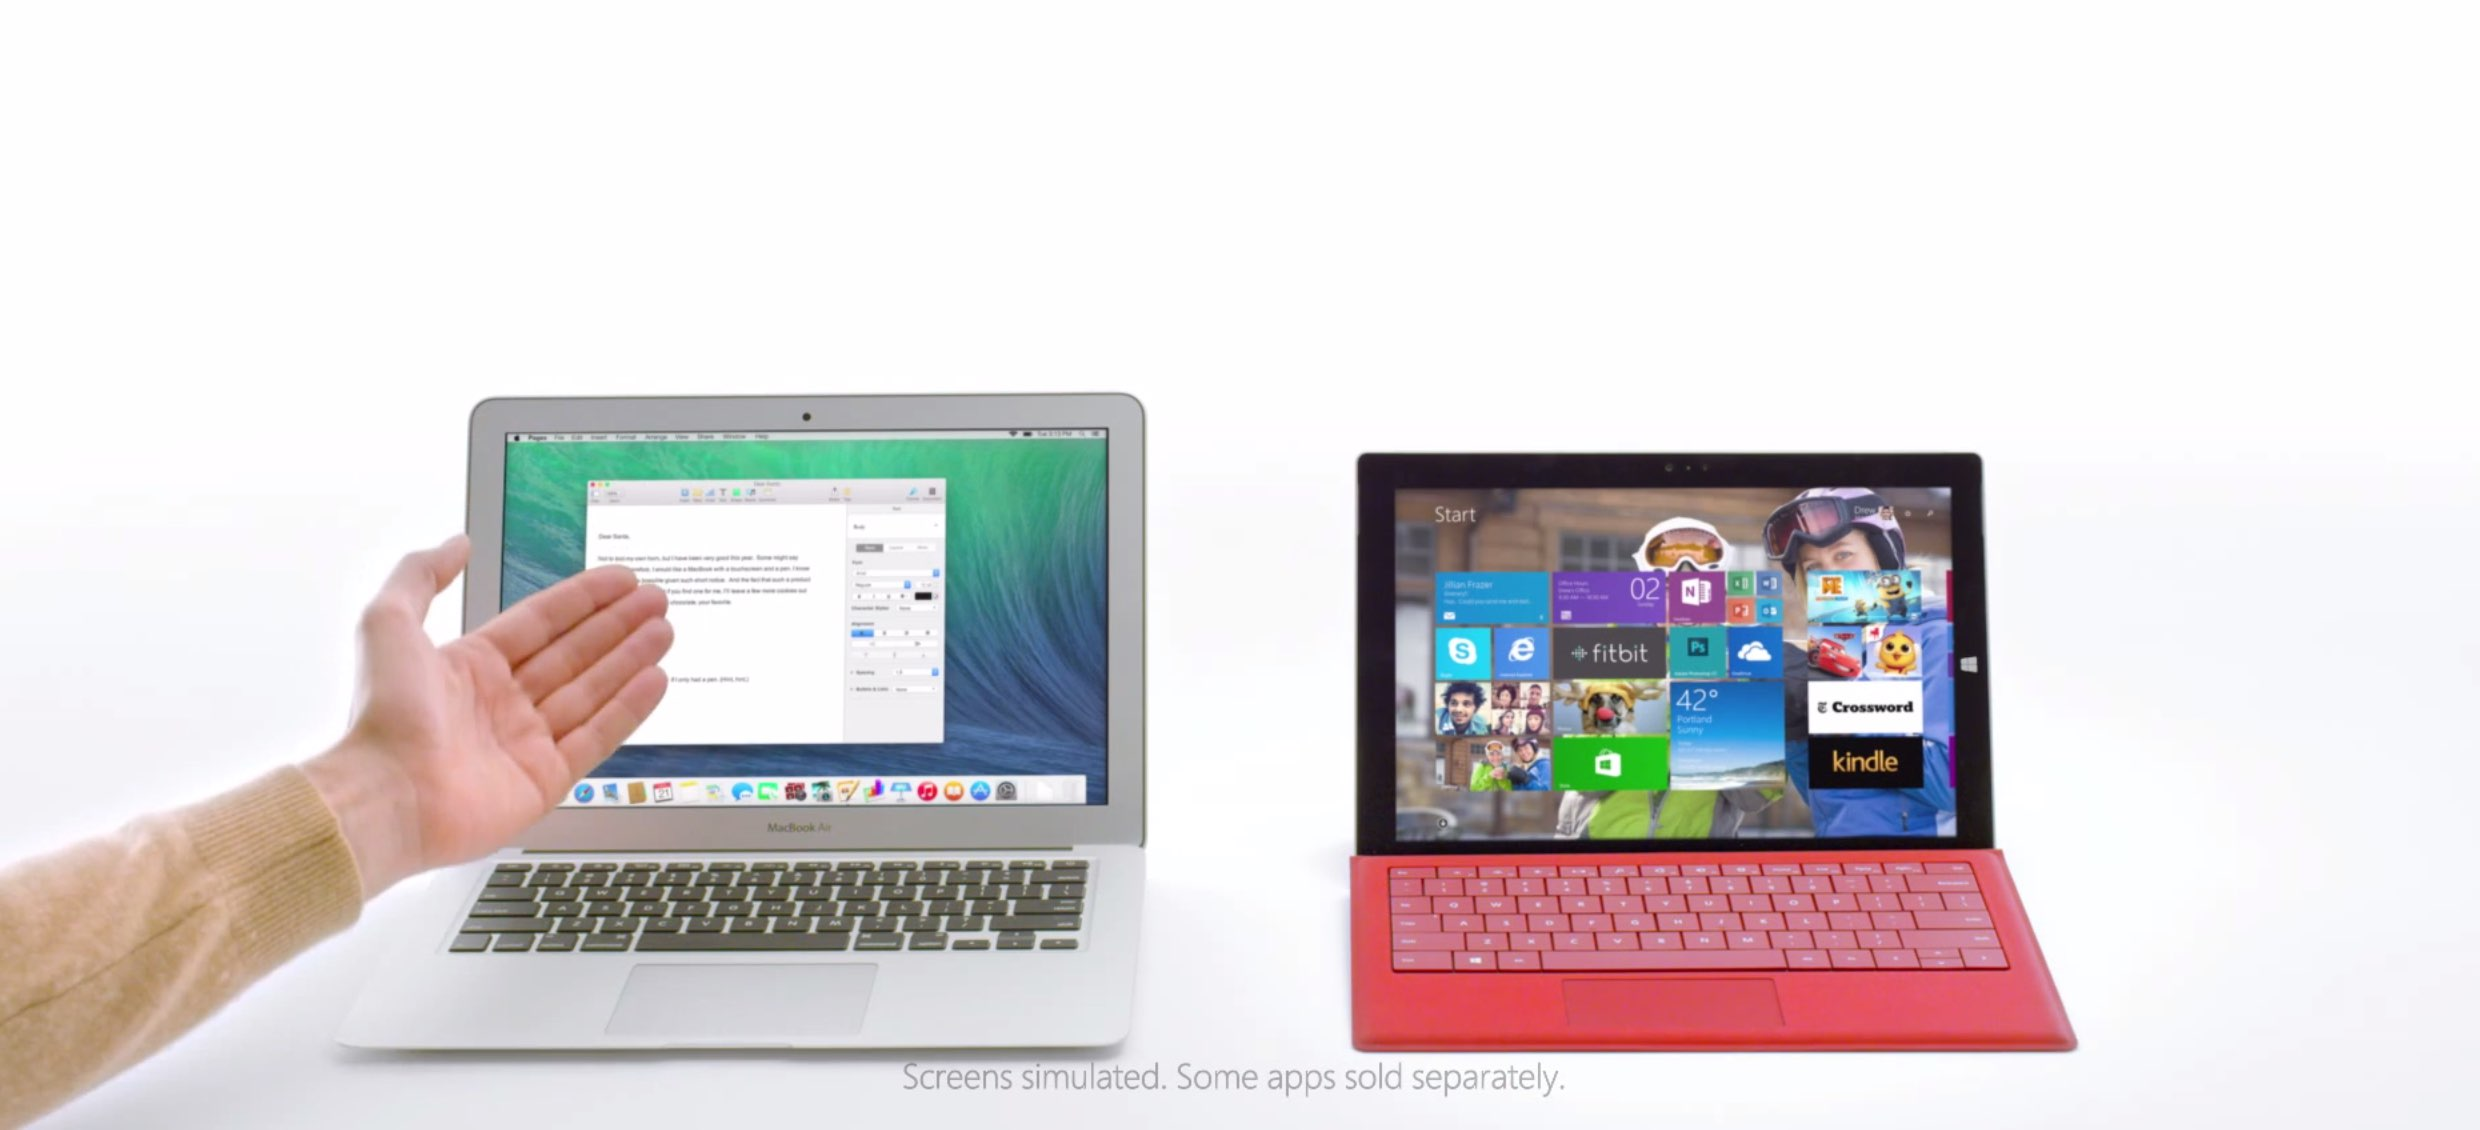 """Mein Mac ist klasse!"" - neues Microsoft Surface Pro 3 Video 10"